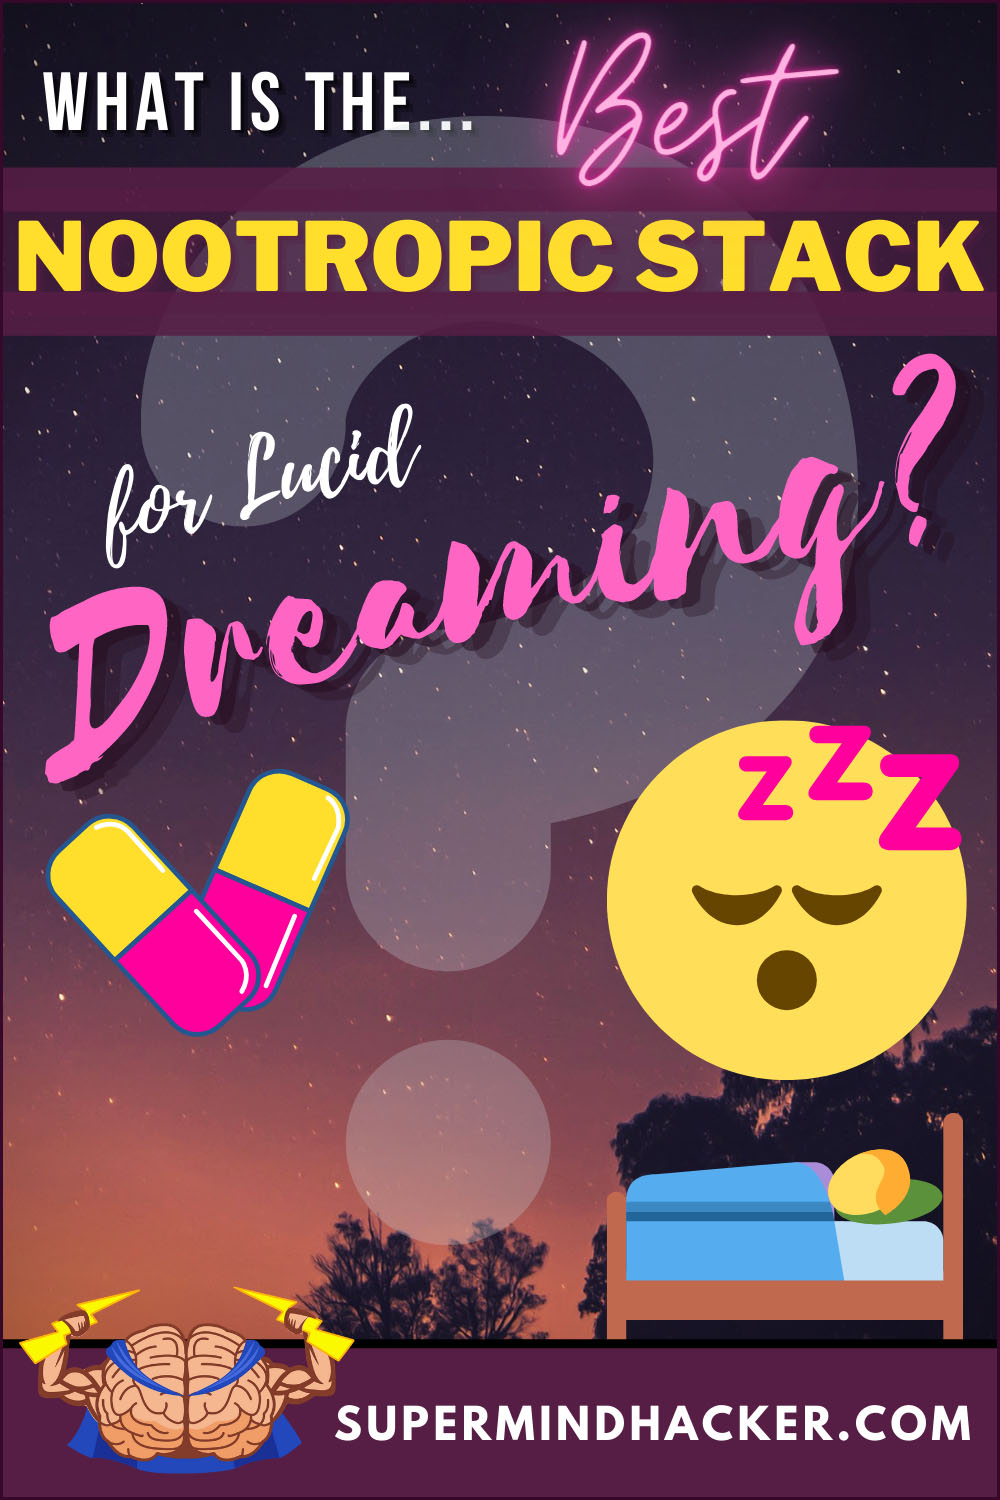 Best Nootropic Stack for Lucid Dreaming